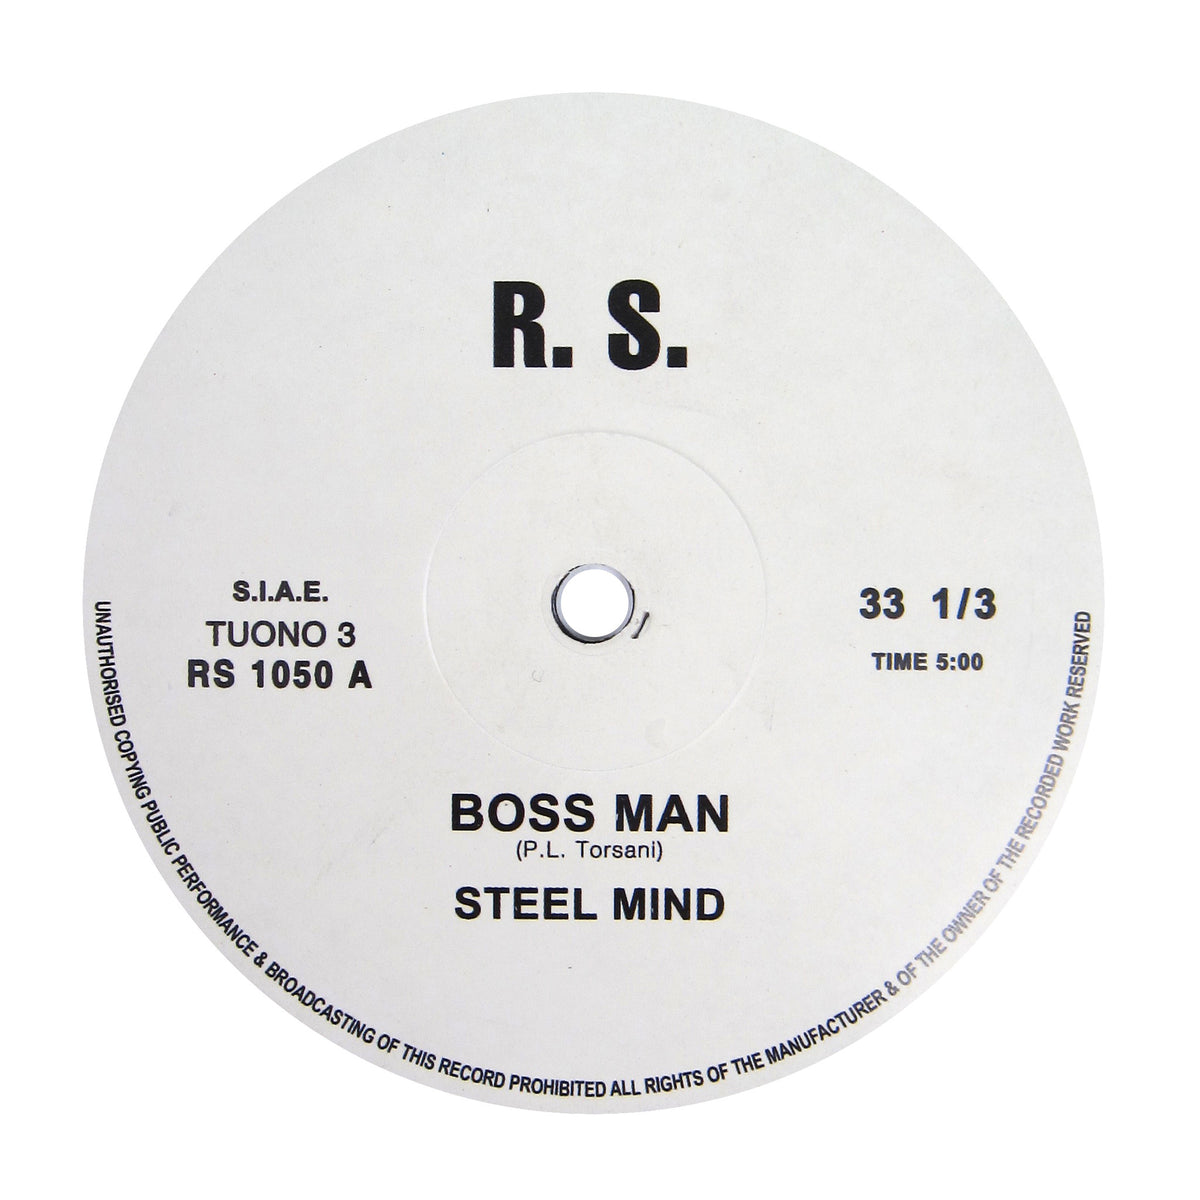 Steel Mind: Boss Man Vinyl 12""